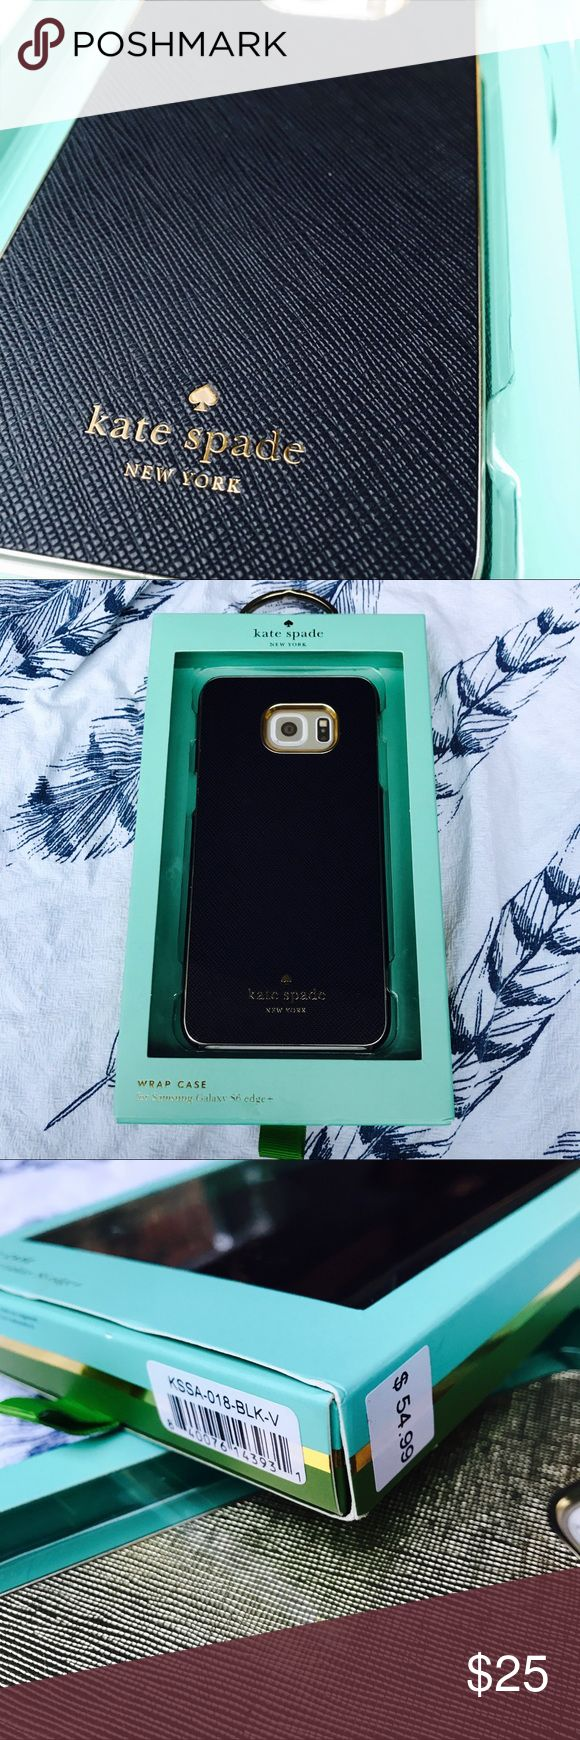 Black Kate Spade Wrap Case for Galaxy S6 Edge+ Kate Spade New York Wrap Case for Samsung Galaxy S6 edge+ Saffiano Black KSSA-018-BLK-V. Original Kate Spade New York item designed to be used with the Samsung Galaxy S6 edge+. The cases are unused, but the packaging may have signs of wear from storage. kate spade Accessories Phone Cases